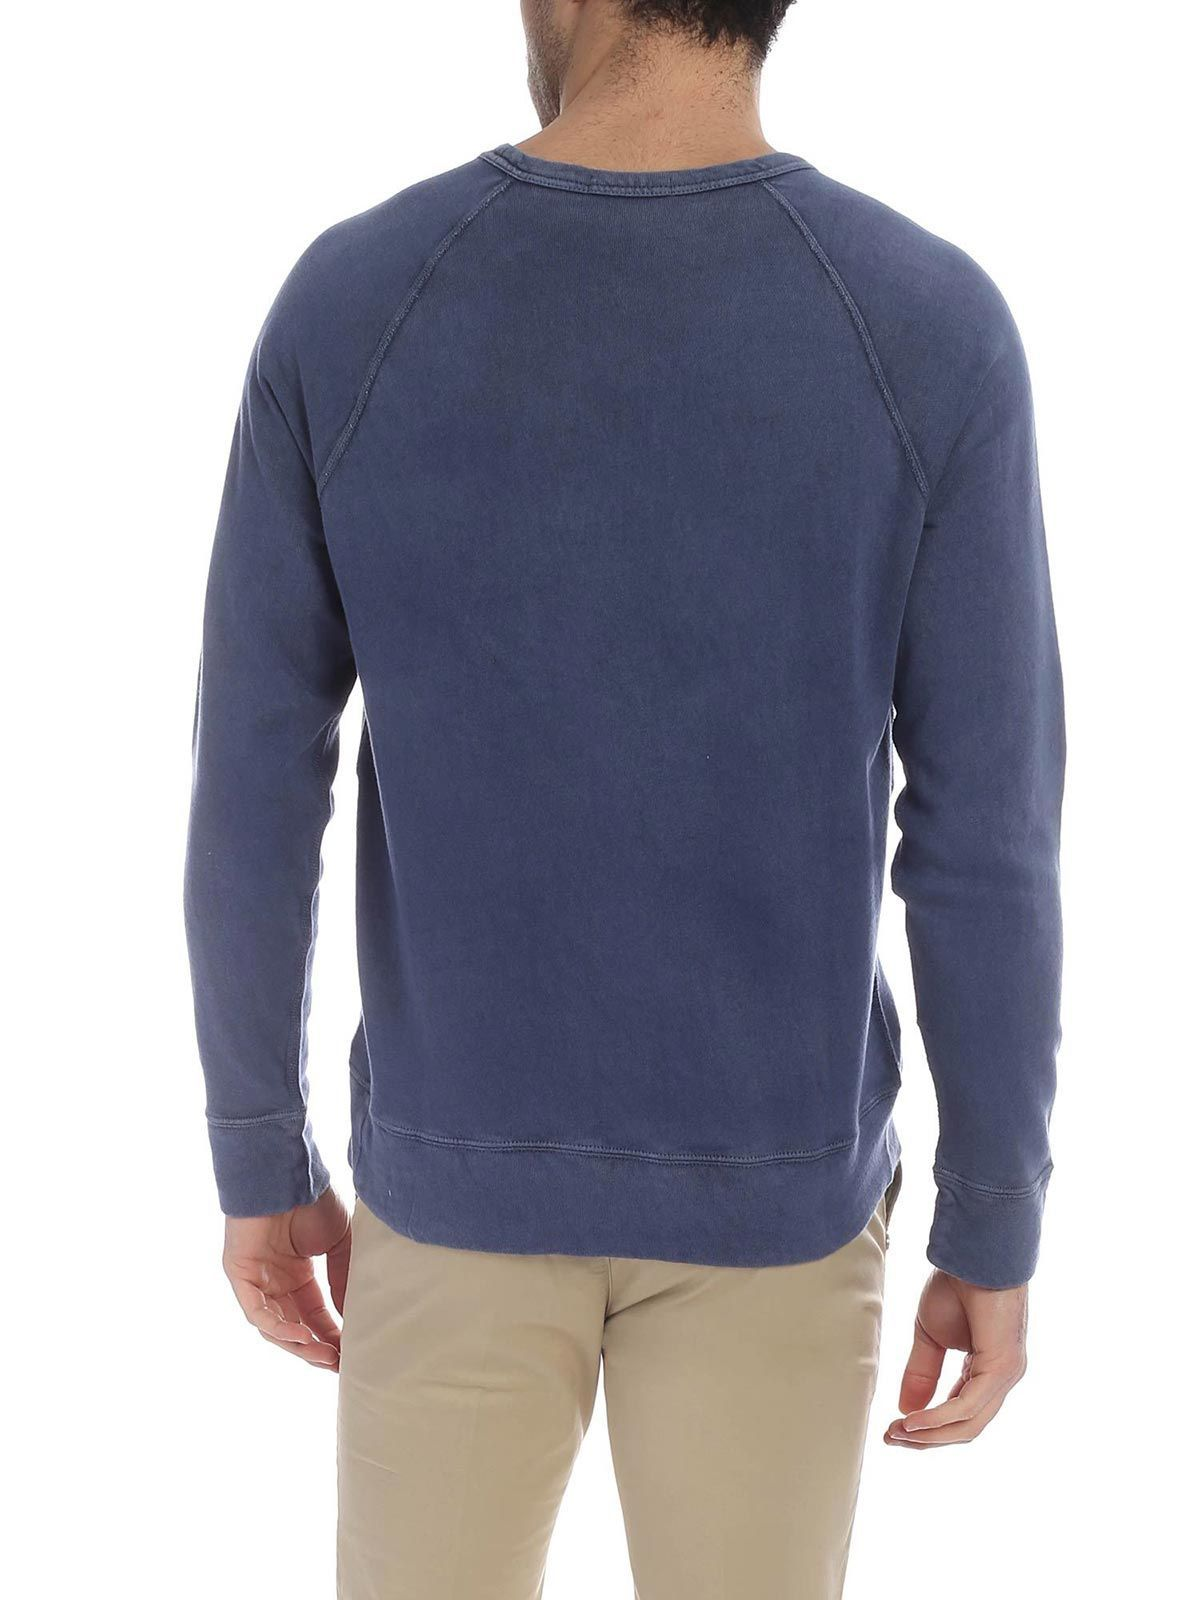 RALPH LAUREN MEN'S 710644952017 BLUE COTTON SWEATSHIRT